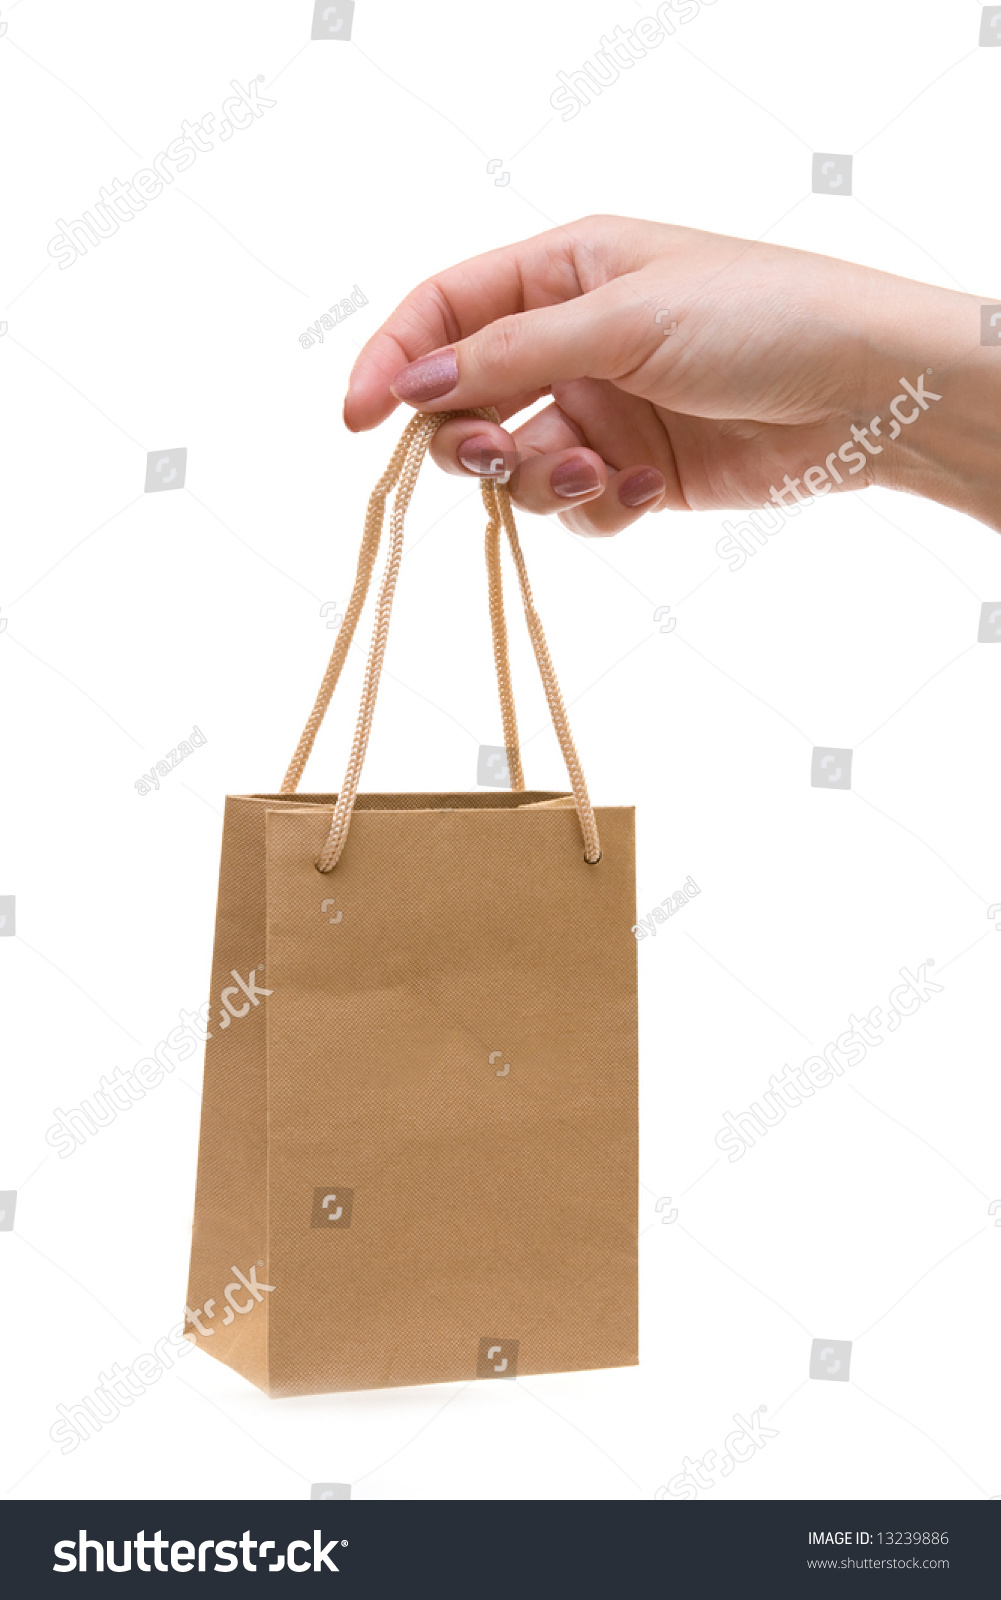 Mini Shopping Bag Hand Stock Photo 13239886 - Shutterstock